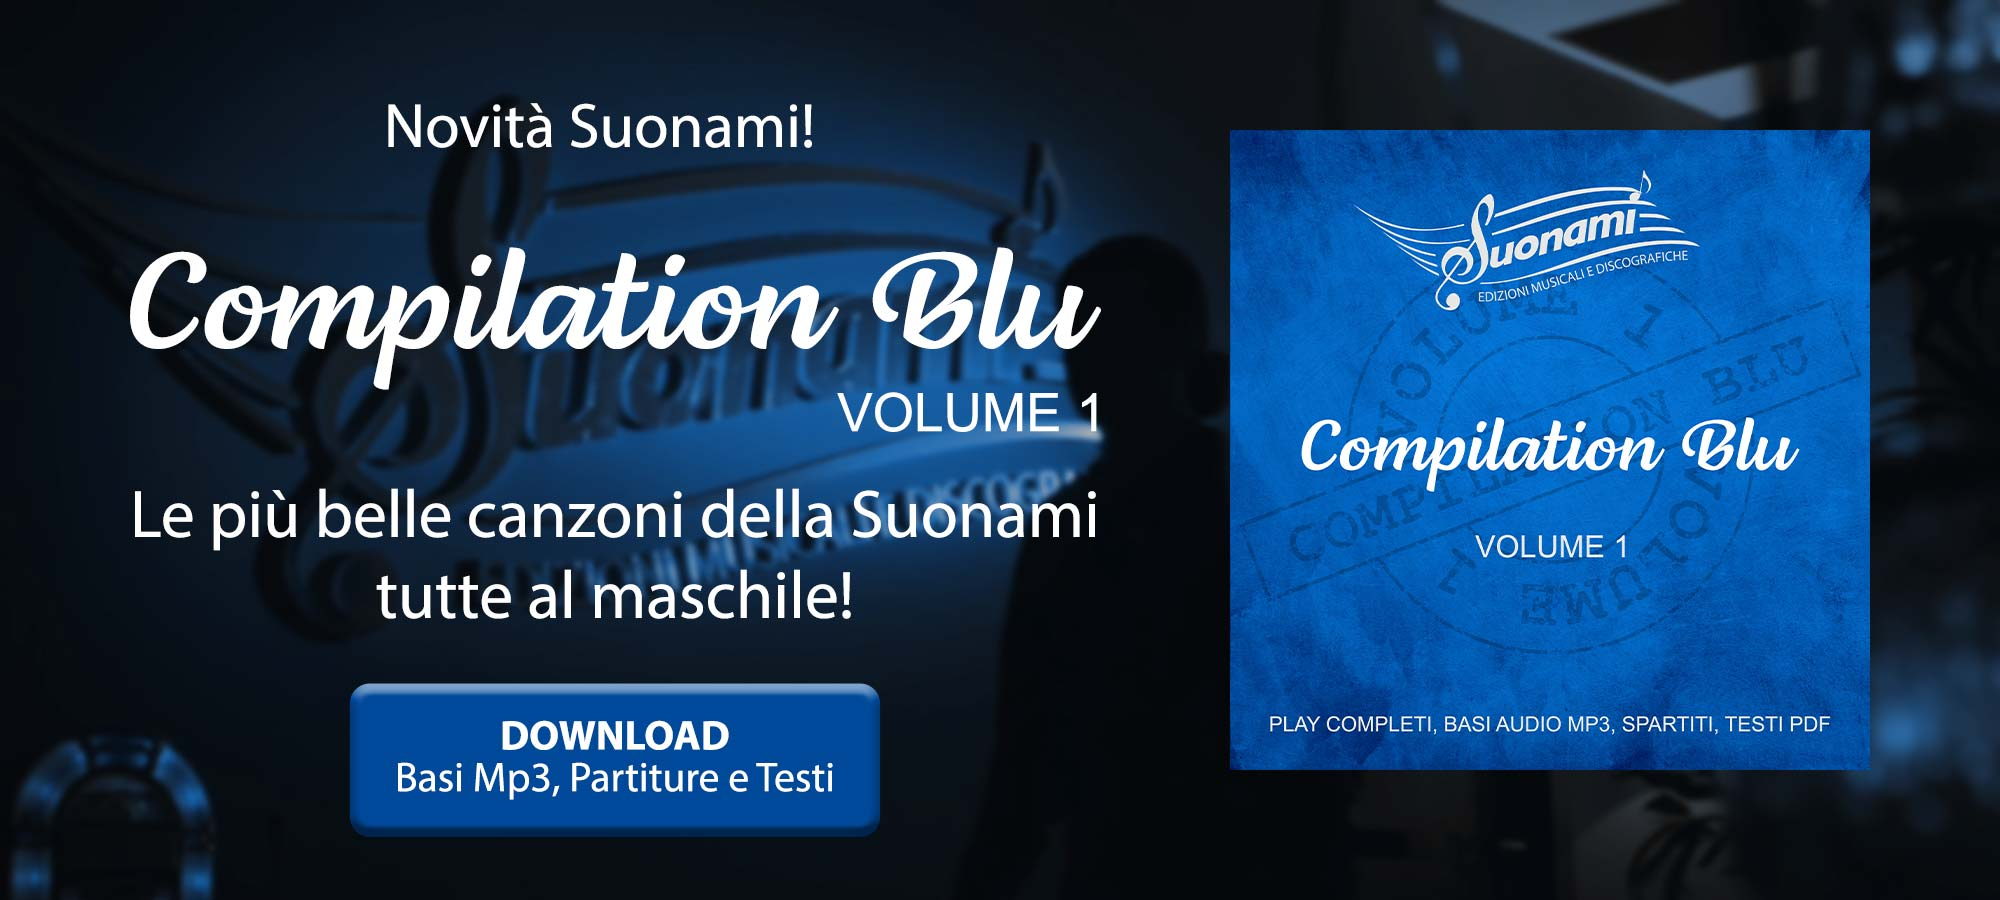 SUONAMI - Compilation Blu - Volume 1